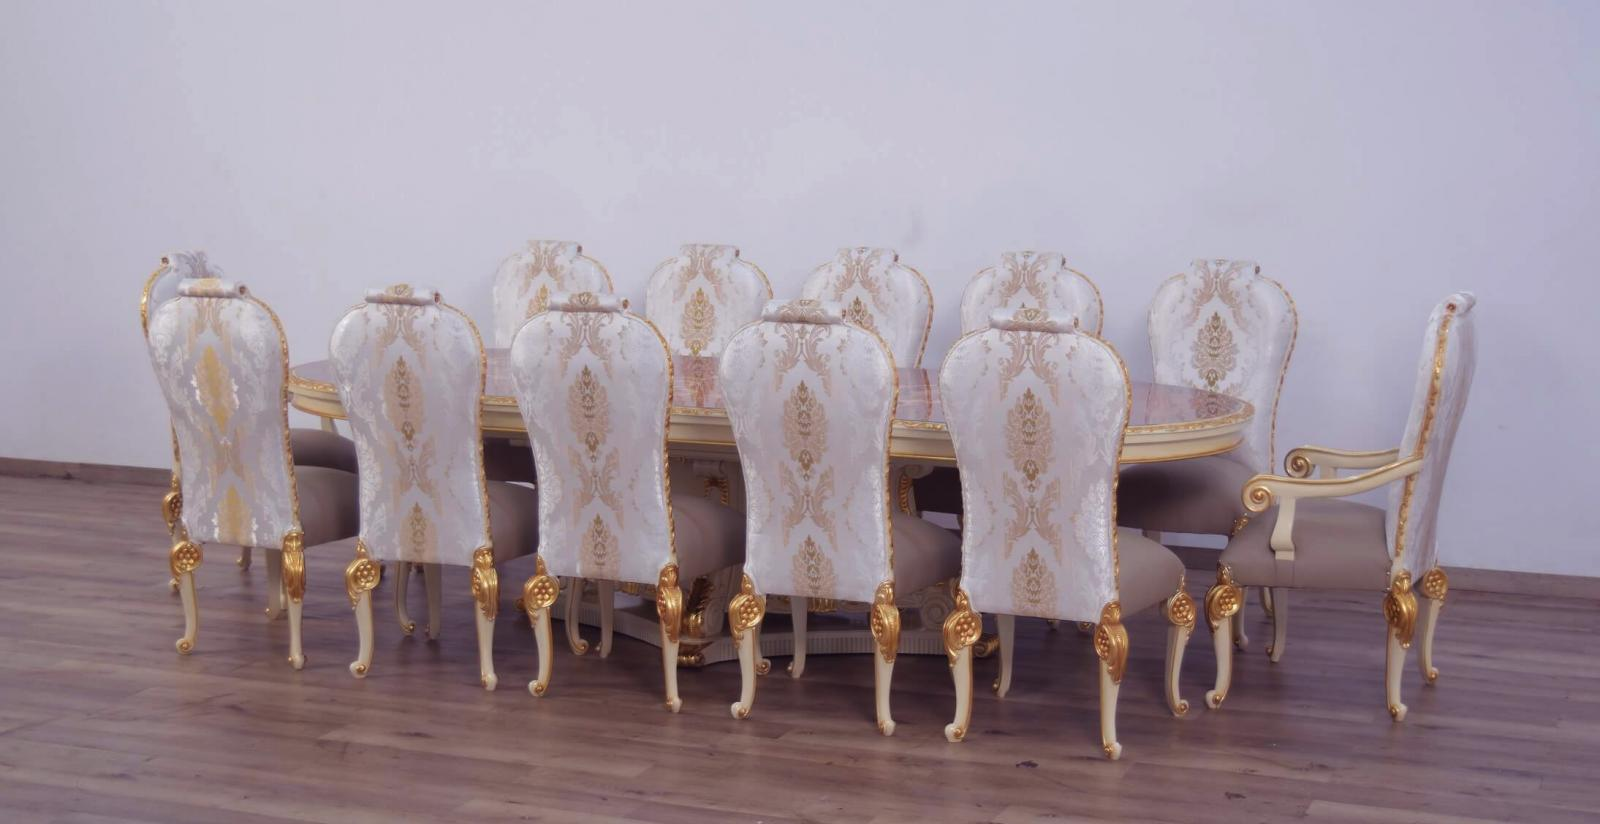 Contemporary, Modern Beige, Gold, Pearl Leather and Wood, Fabric, Solid Hardwood Dining Table Set 13 pcs BELLAGIO by European Furniture